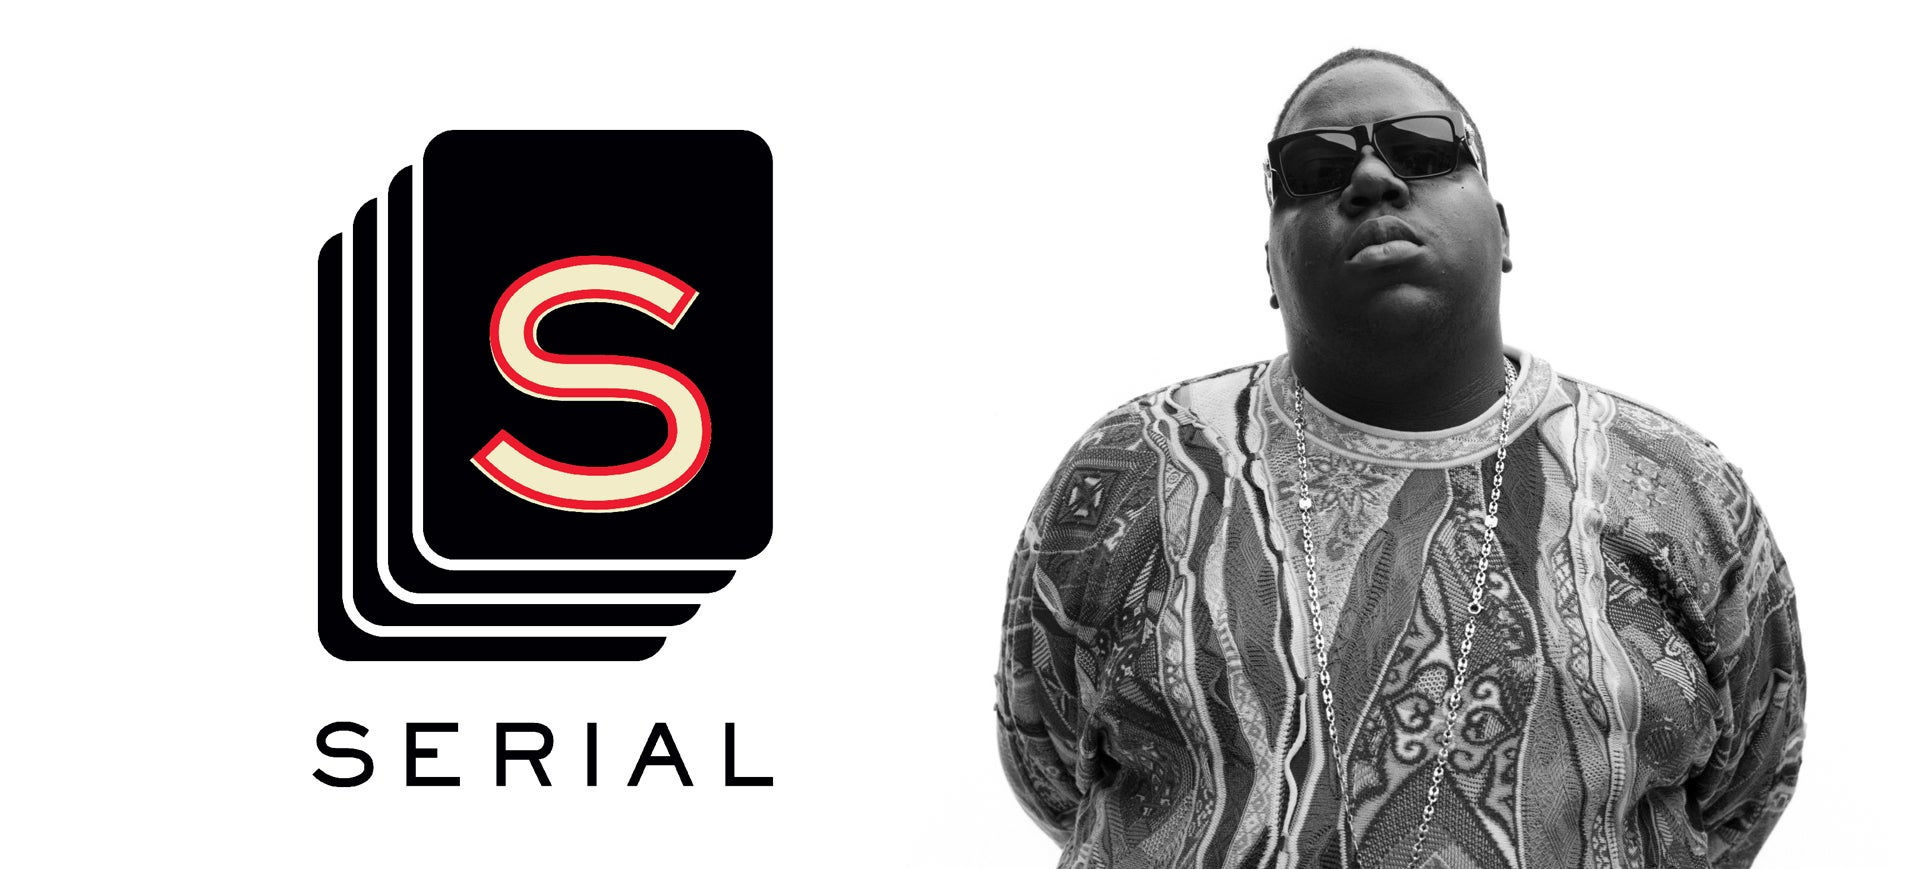 Remixing the Serial Theme with Notorious B.I.G. Is Surprisingly Perfect